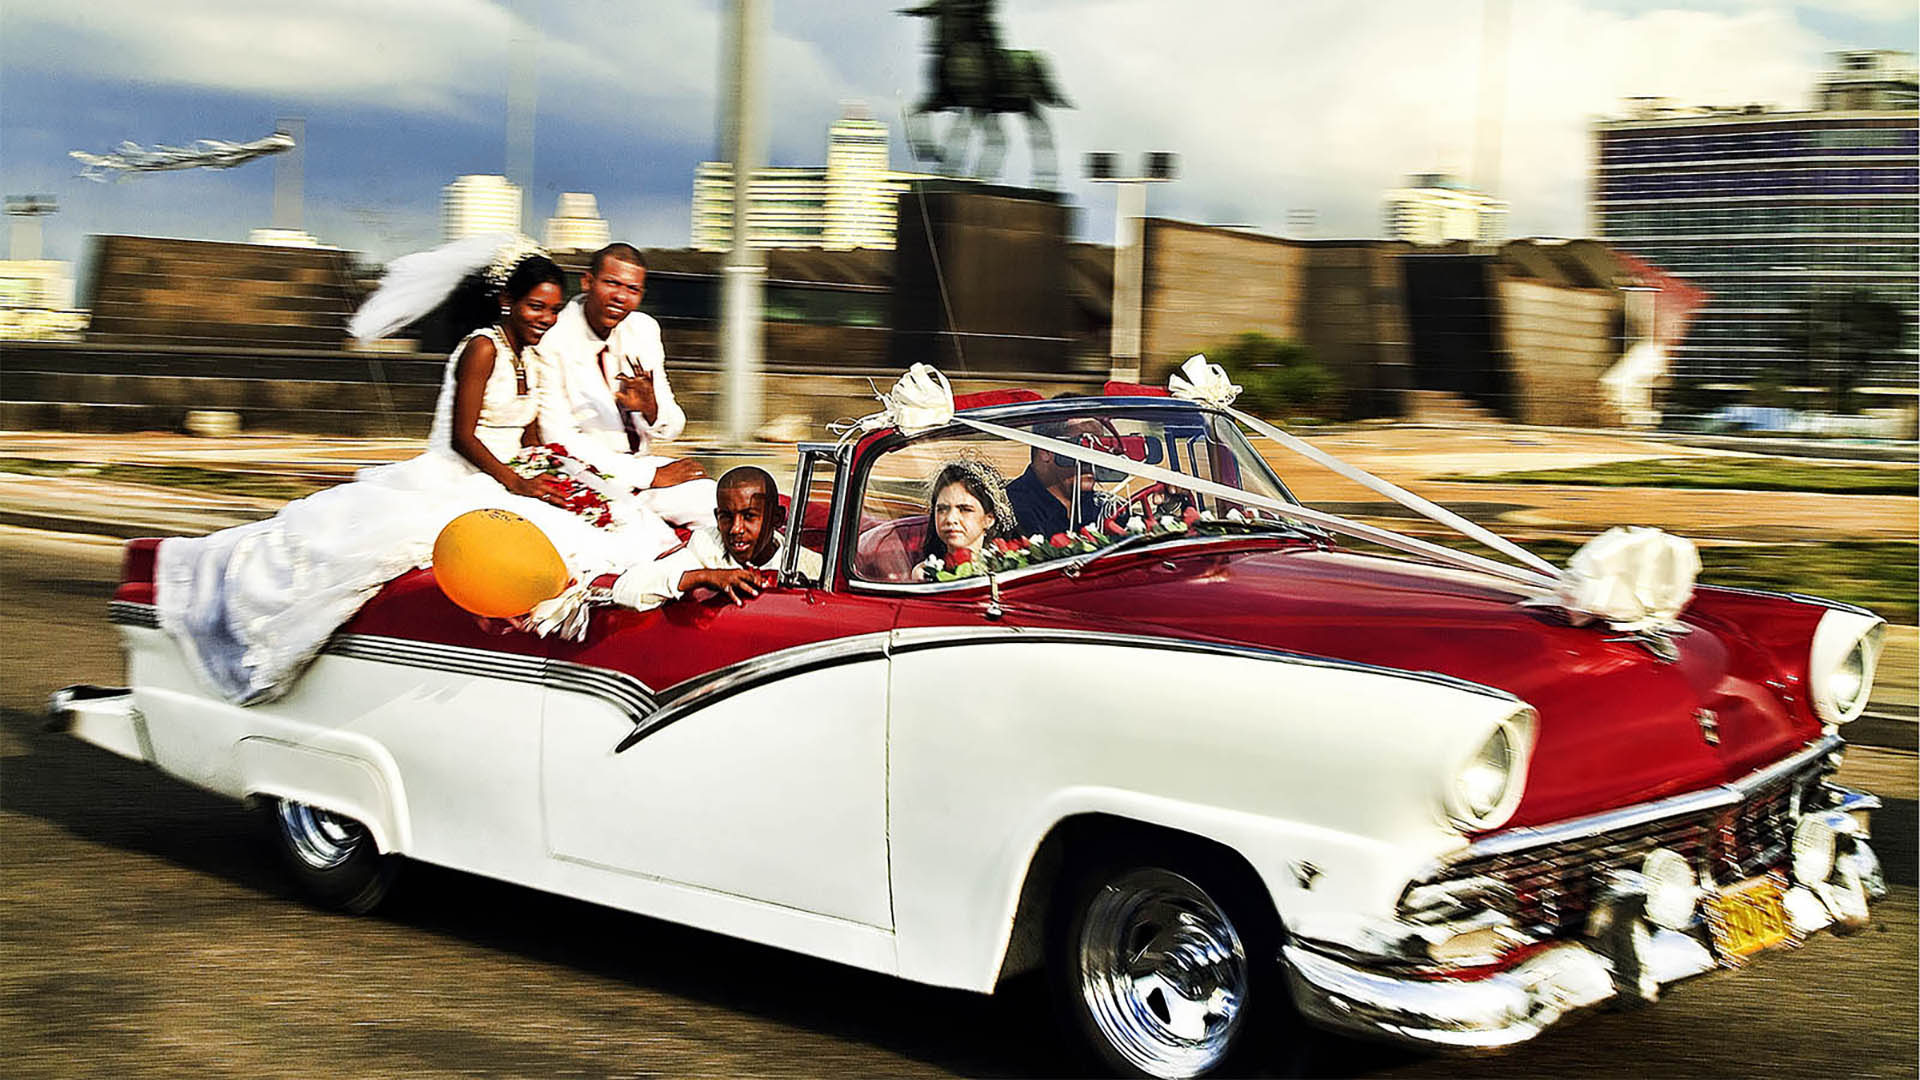 Wedding in Havana: Faces de Cuba